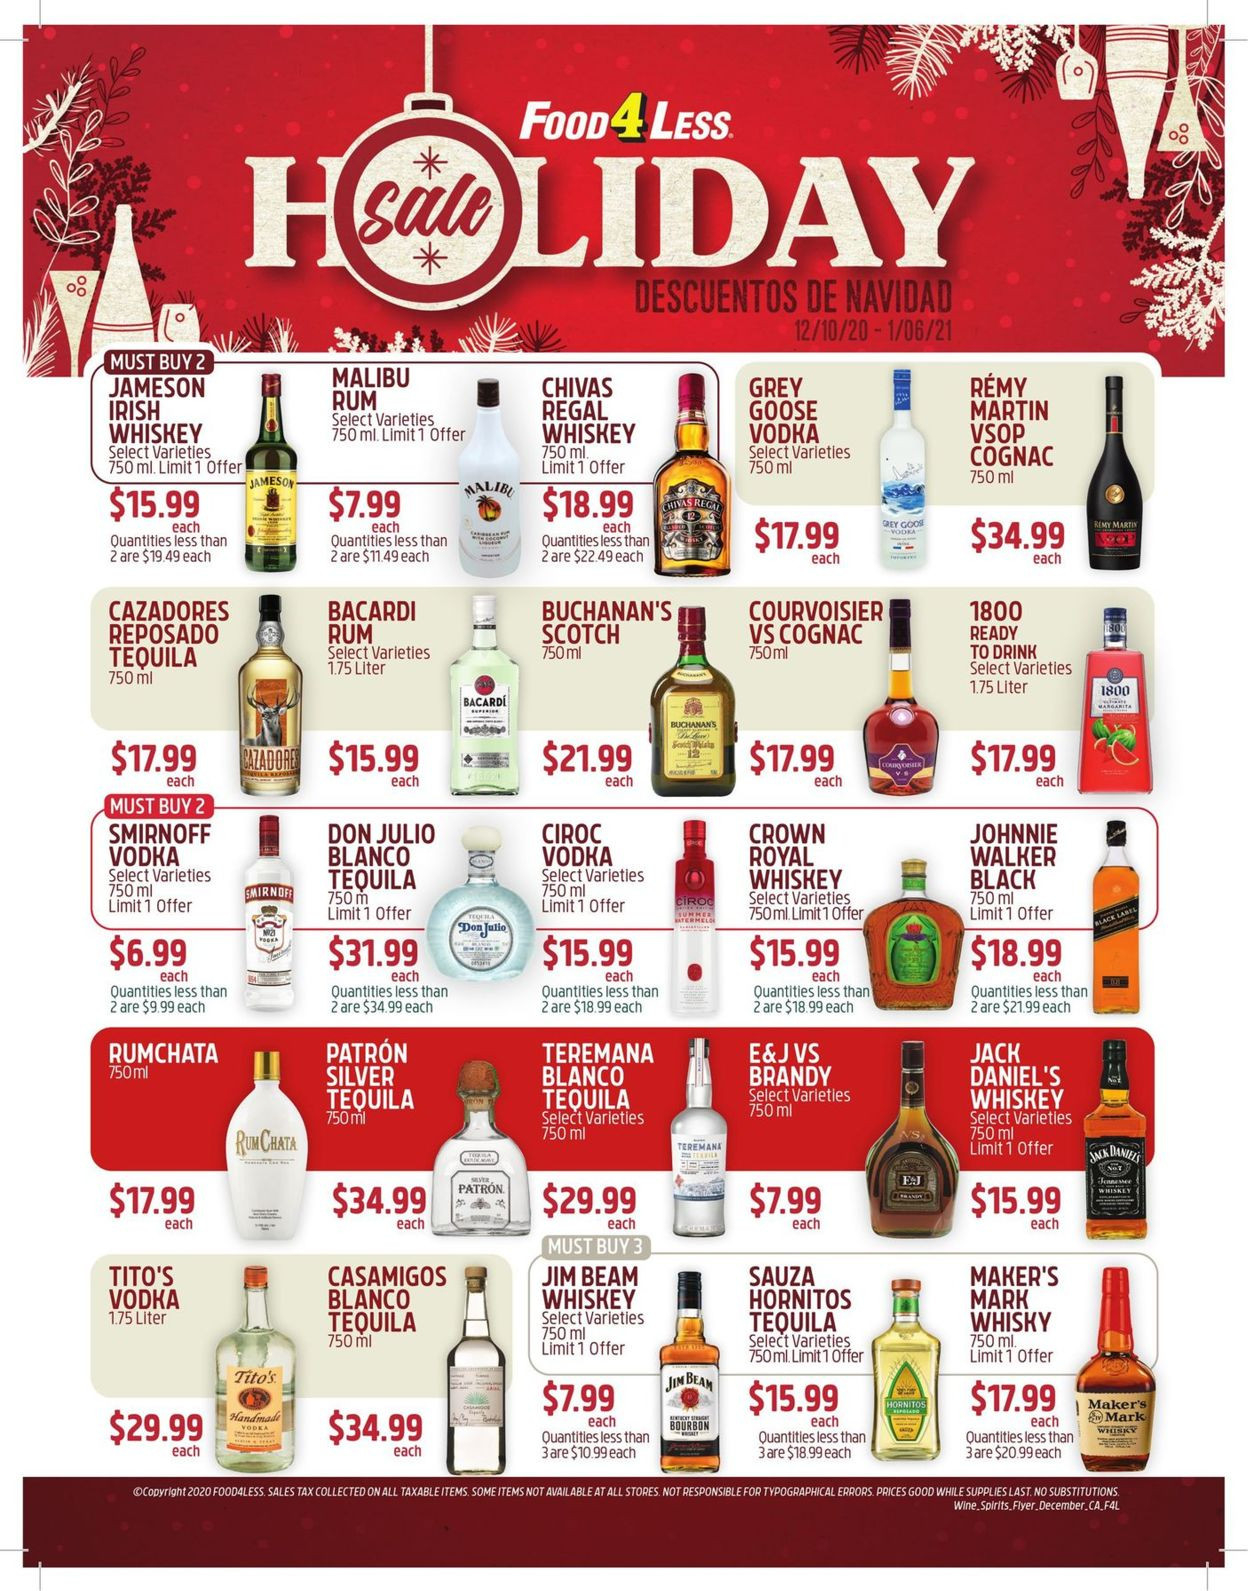 Food 4 Less Holiday Sale 2020 Current Weekly Ad 12/10 - 01-Food Holidays 2021